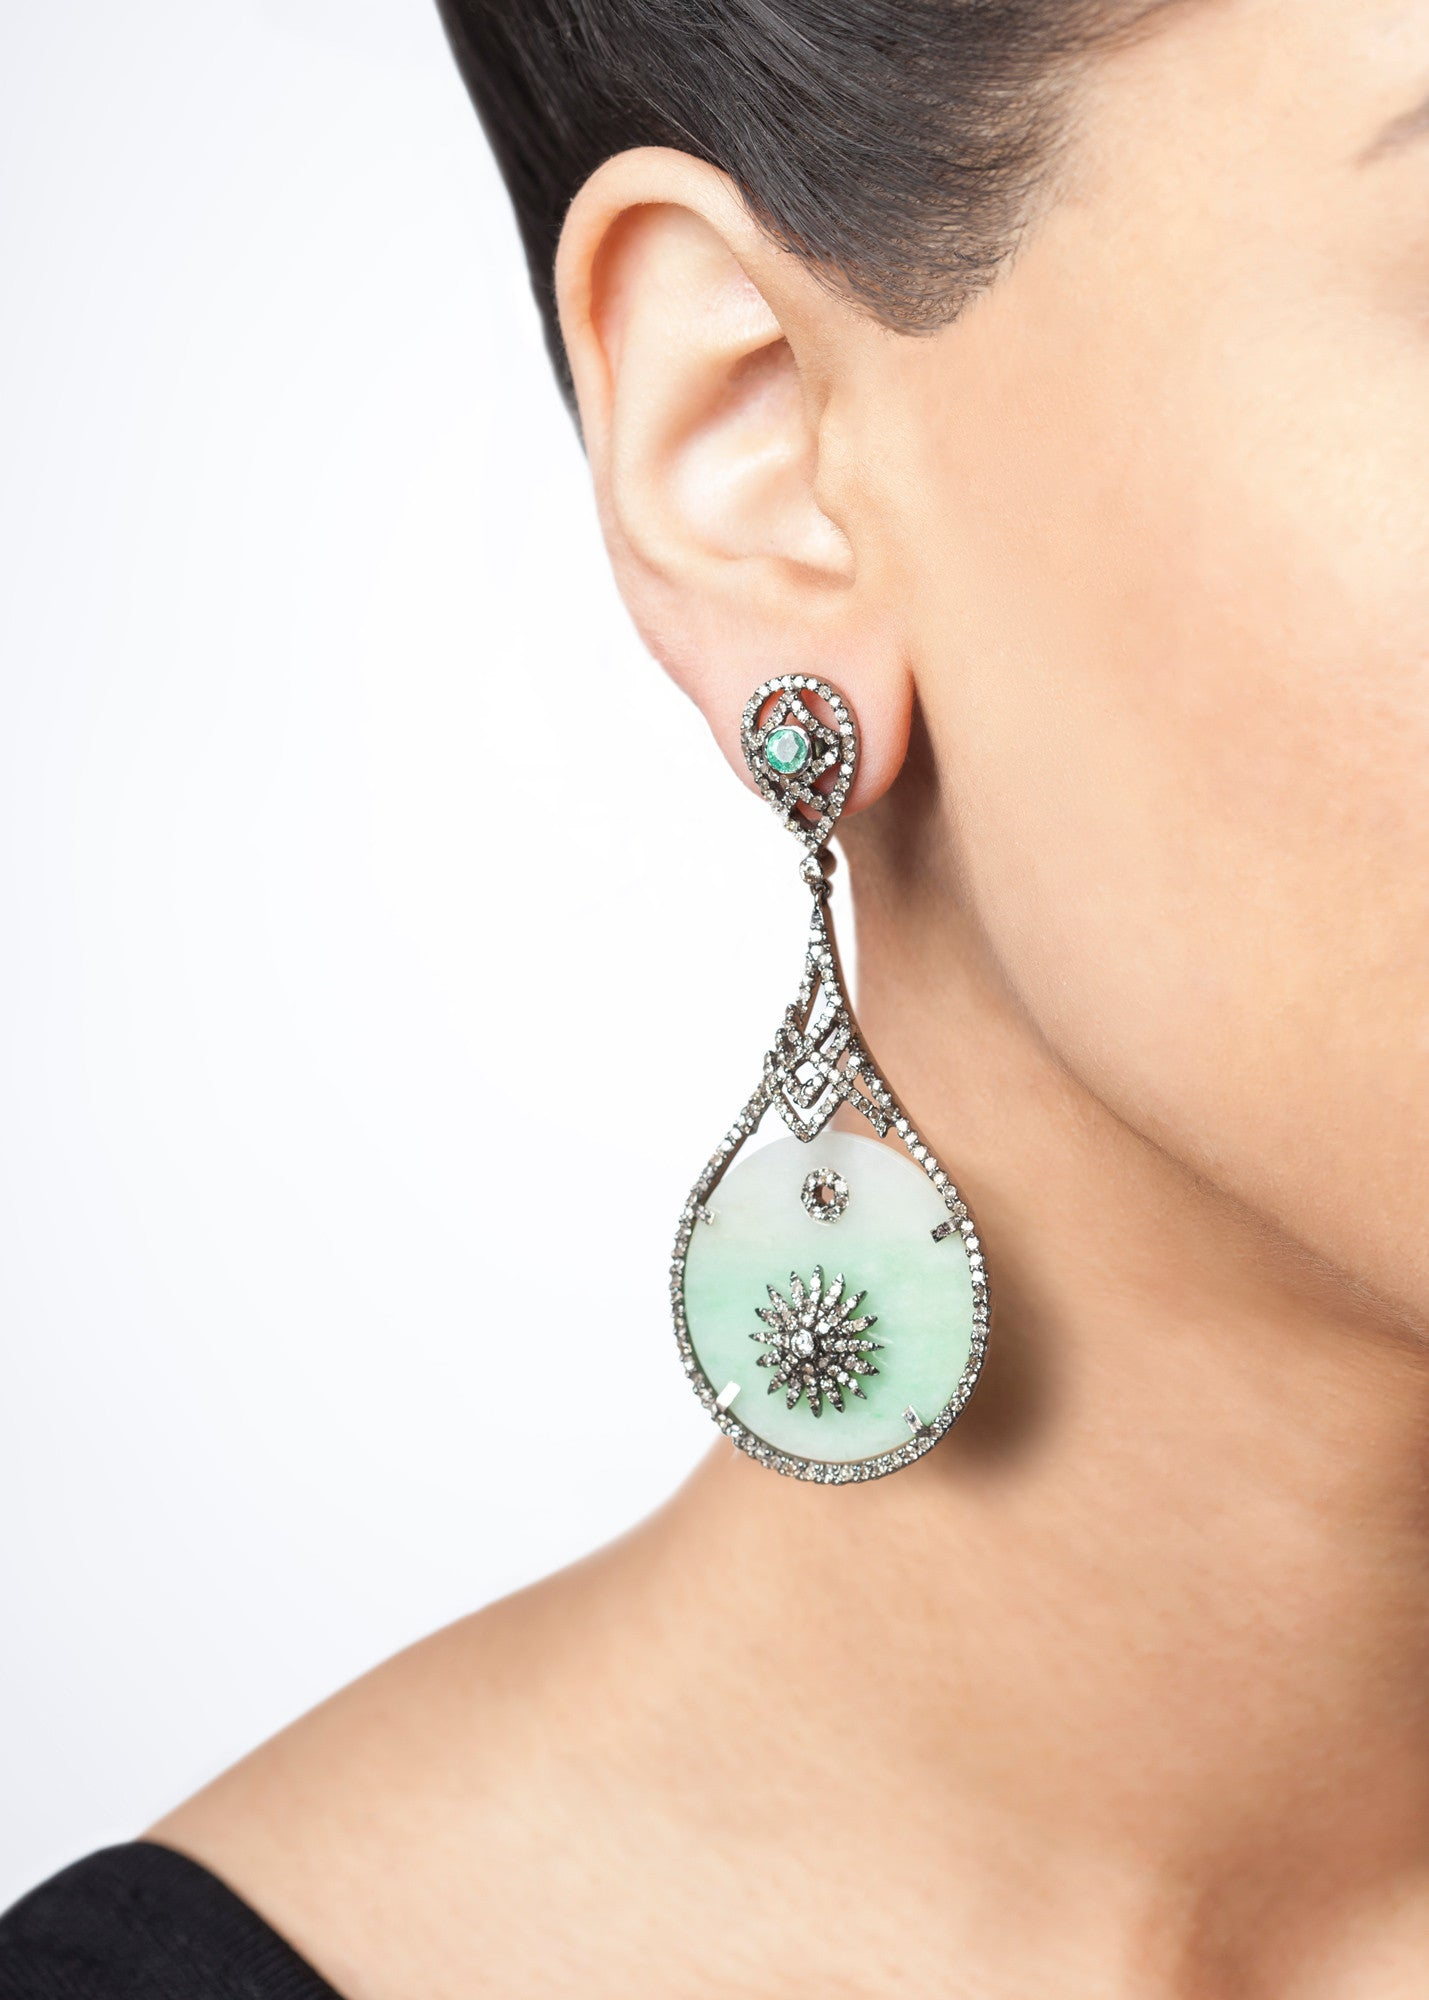 The Jadeite Drops-40% OFF!